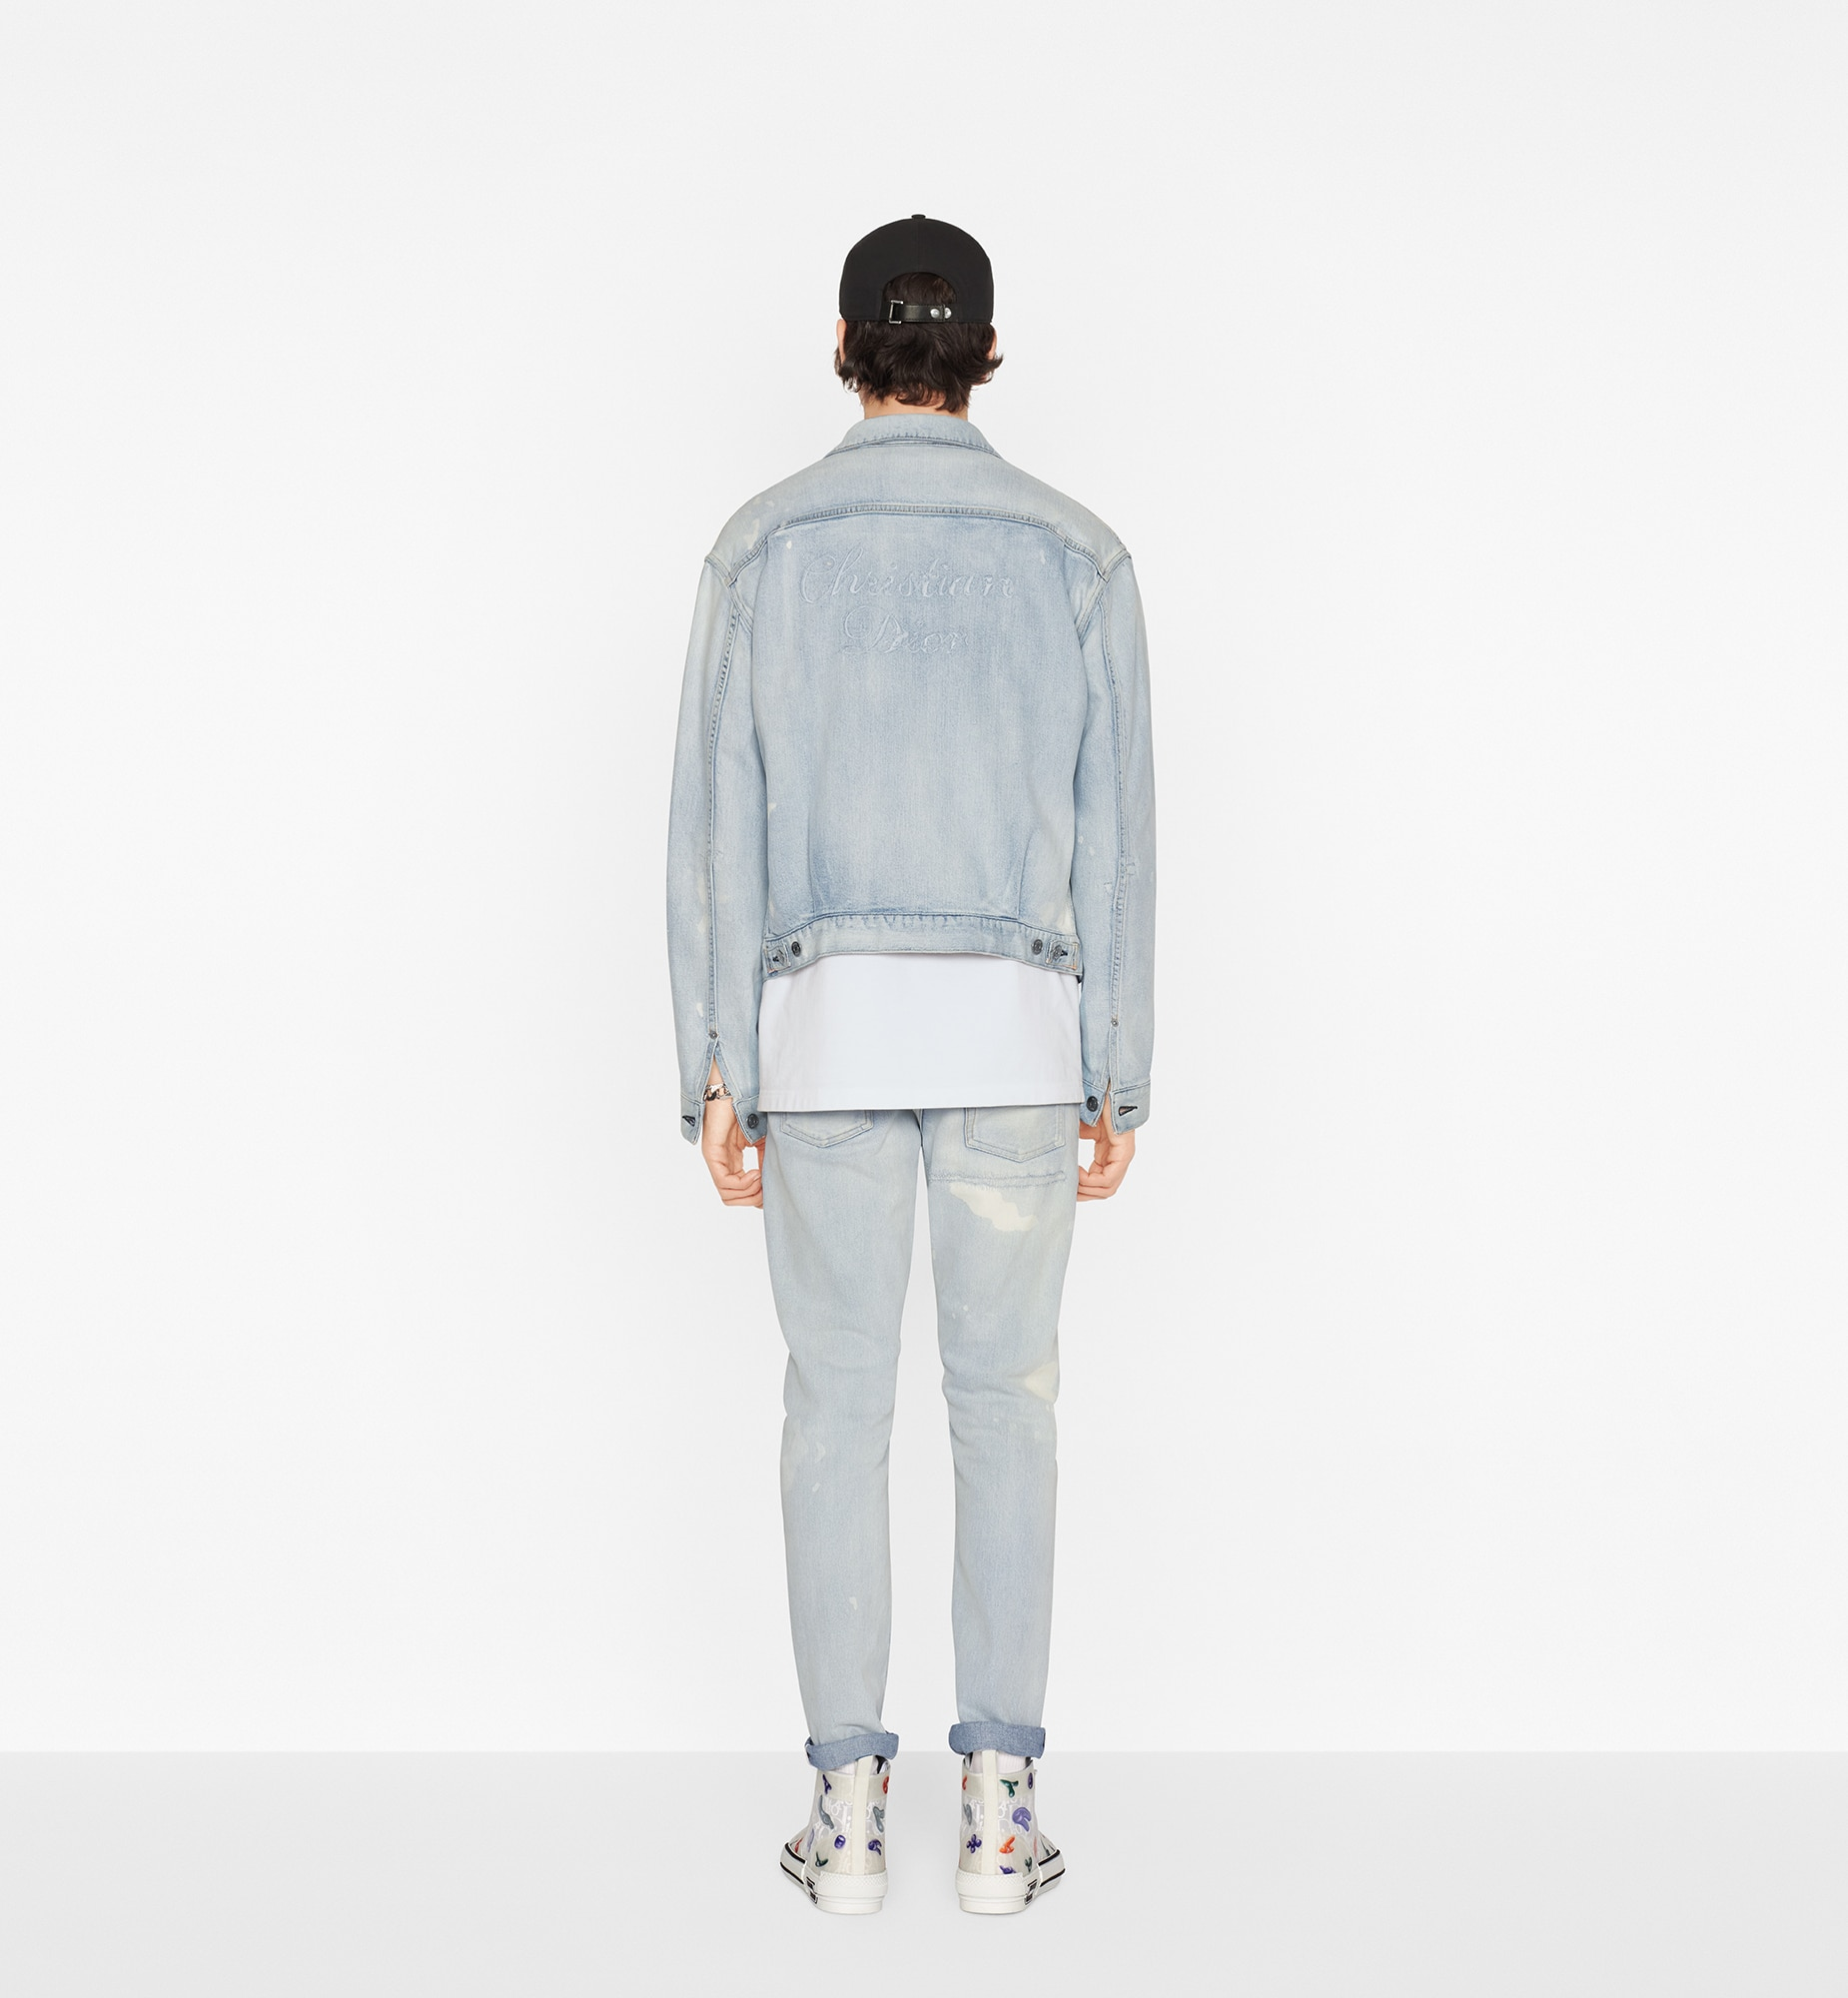 DIOR AND KENNY SCHARF Slim-Fit Jeans Worn view Open gallery